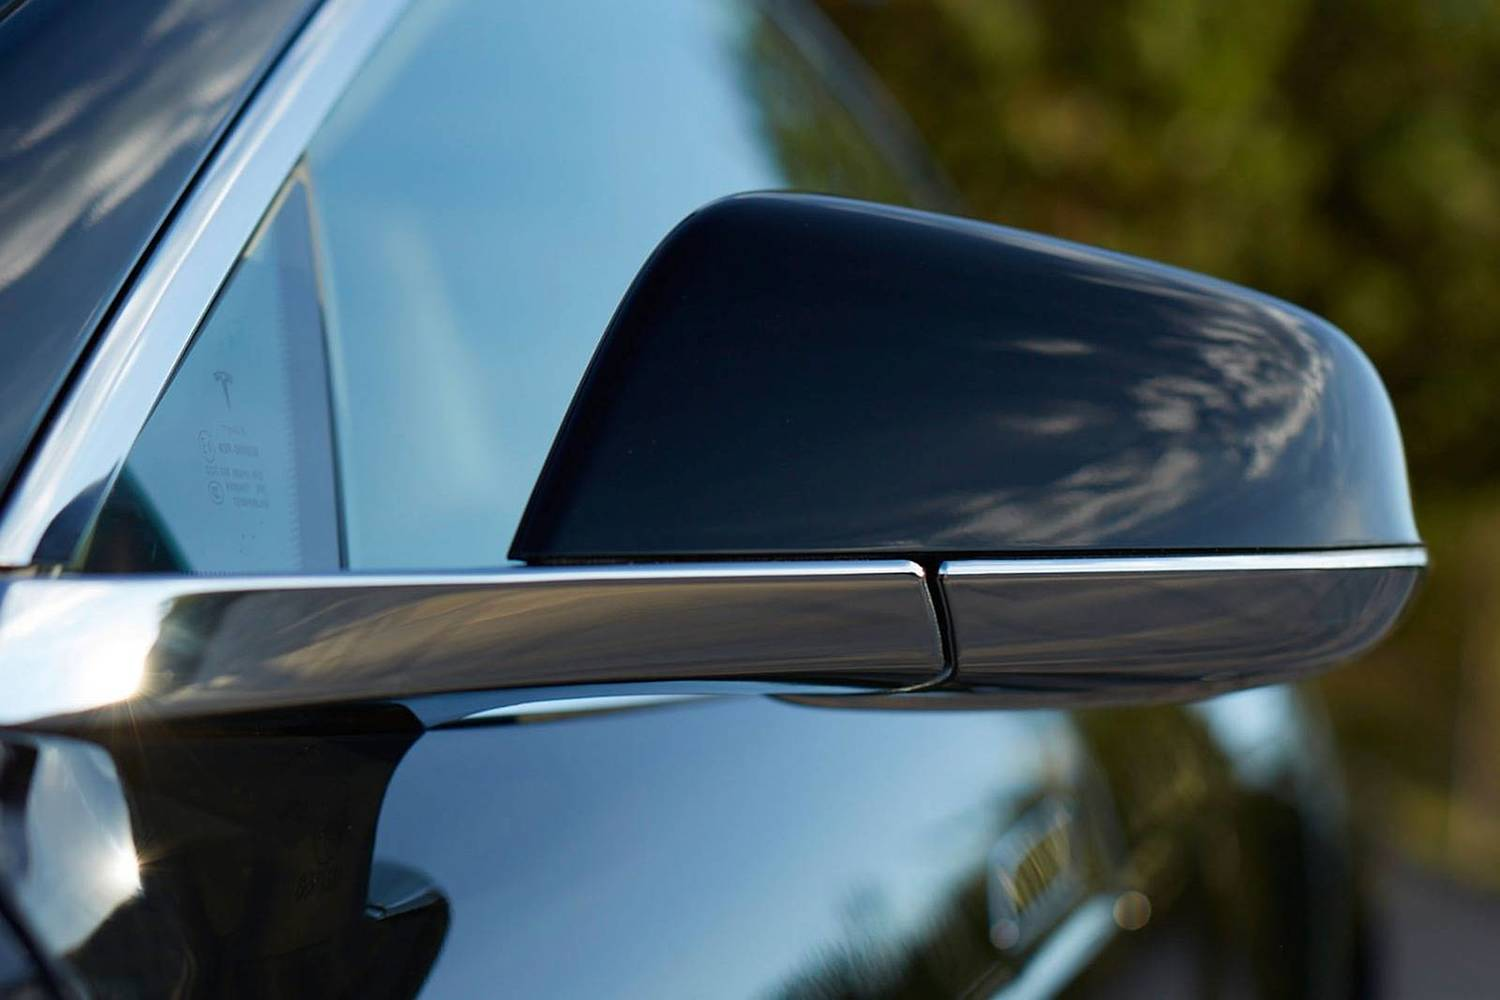 Tesla Model S 90D Sedan Exterior Detail (2016 model year shown)